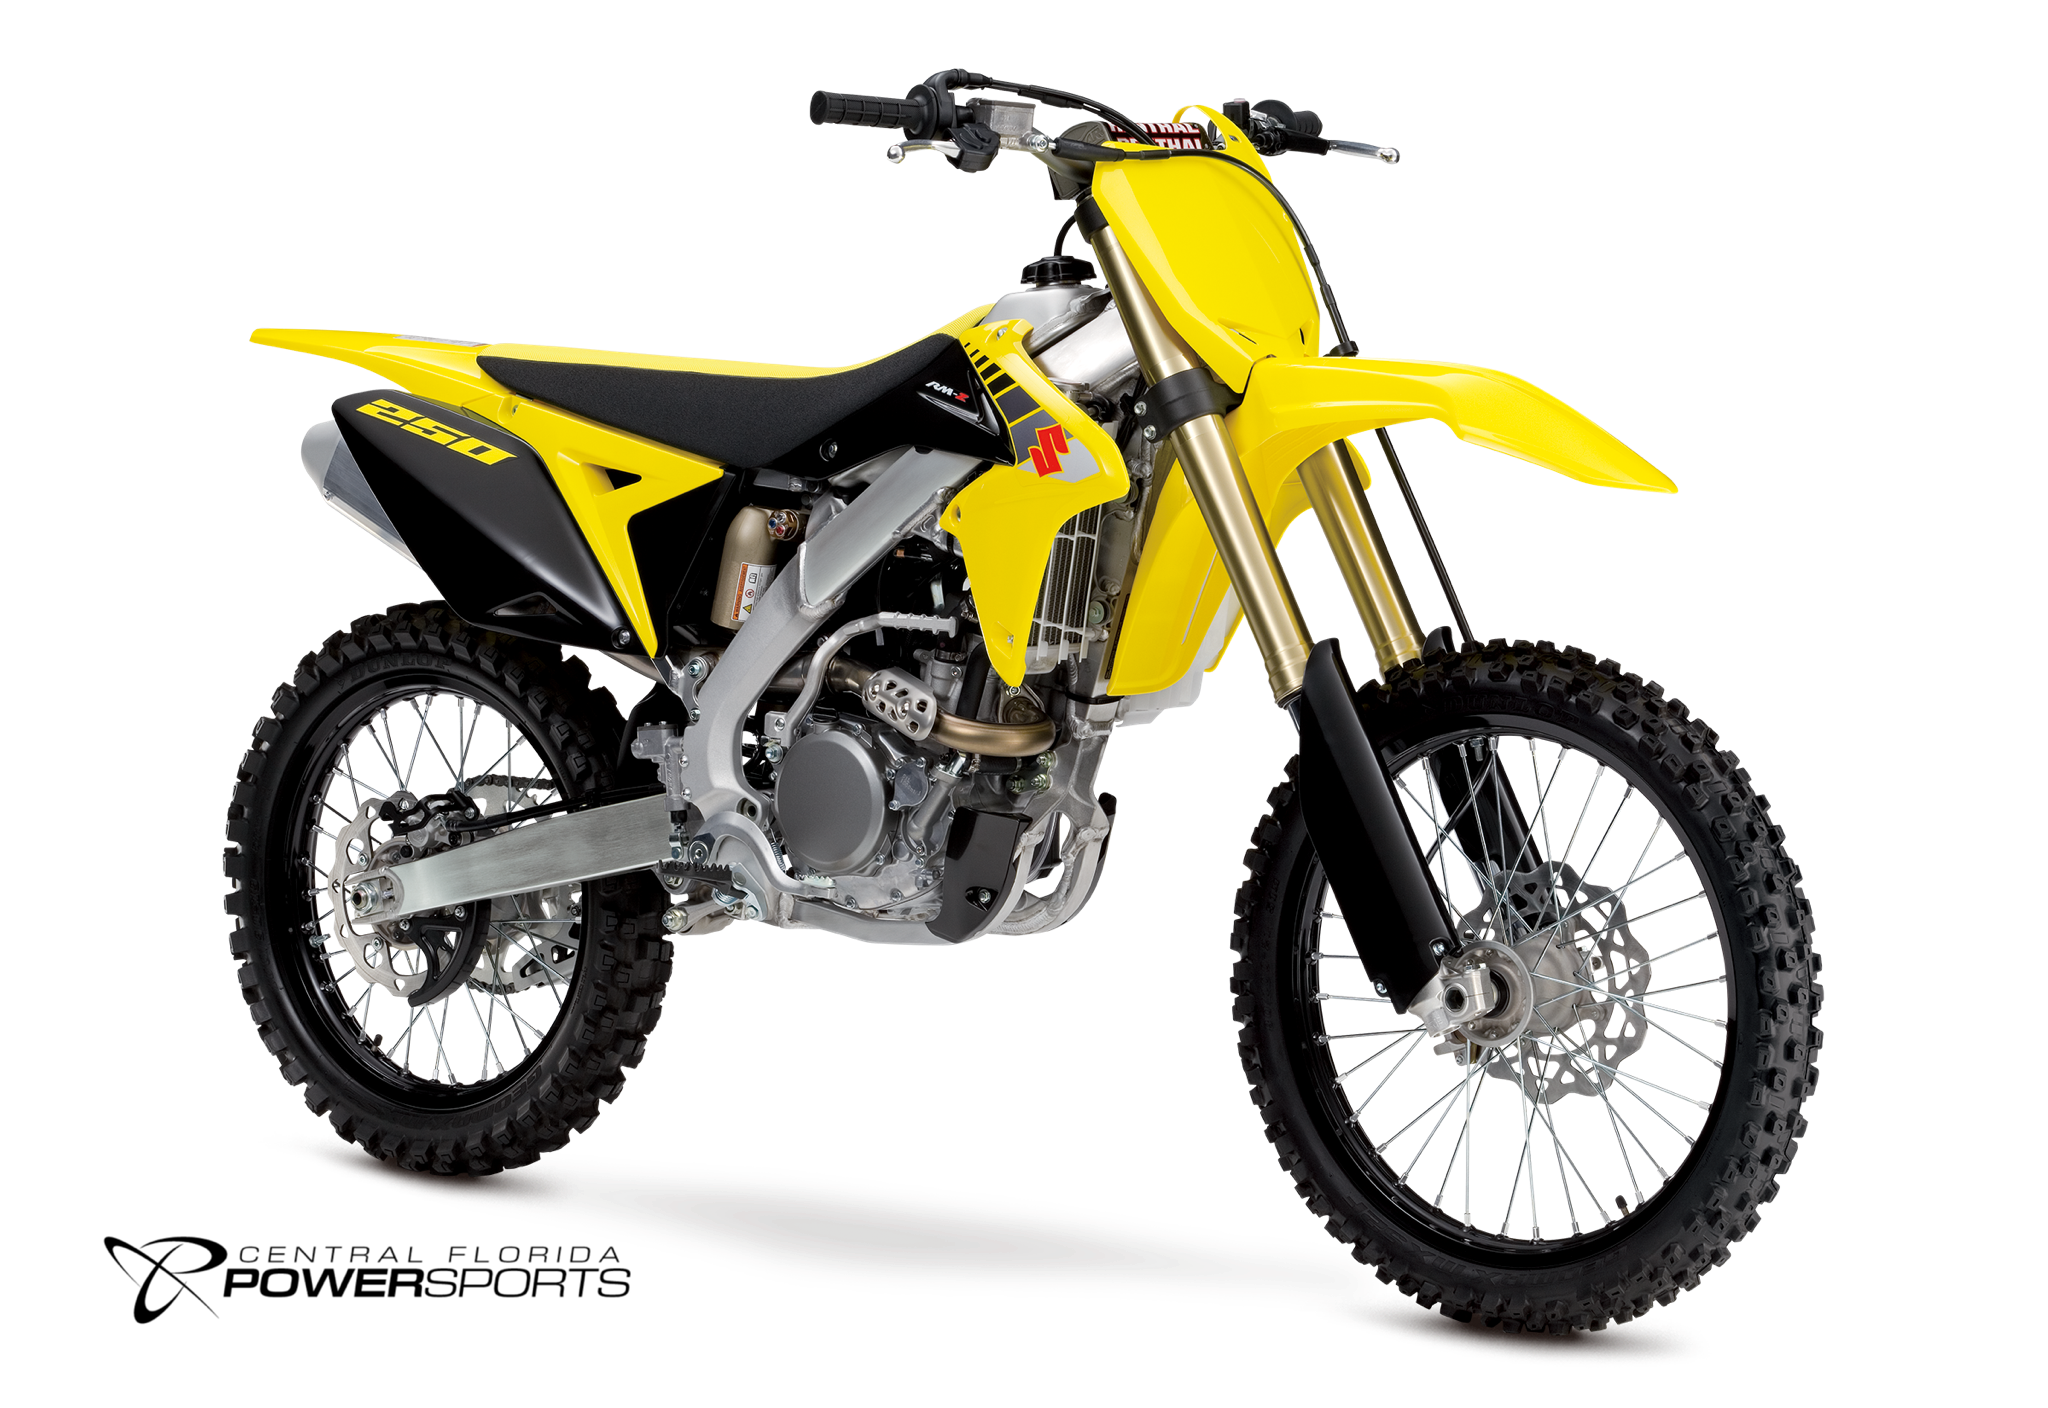 2017 suzuki rm-z250 motorcycle for sale - orlando, fl bike dealer